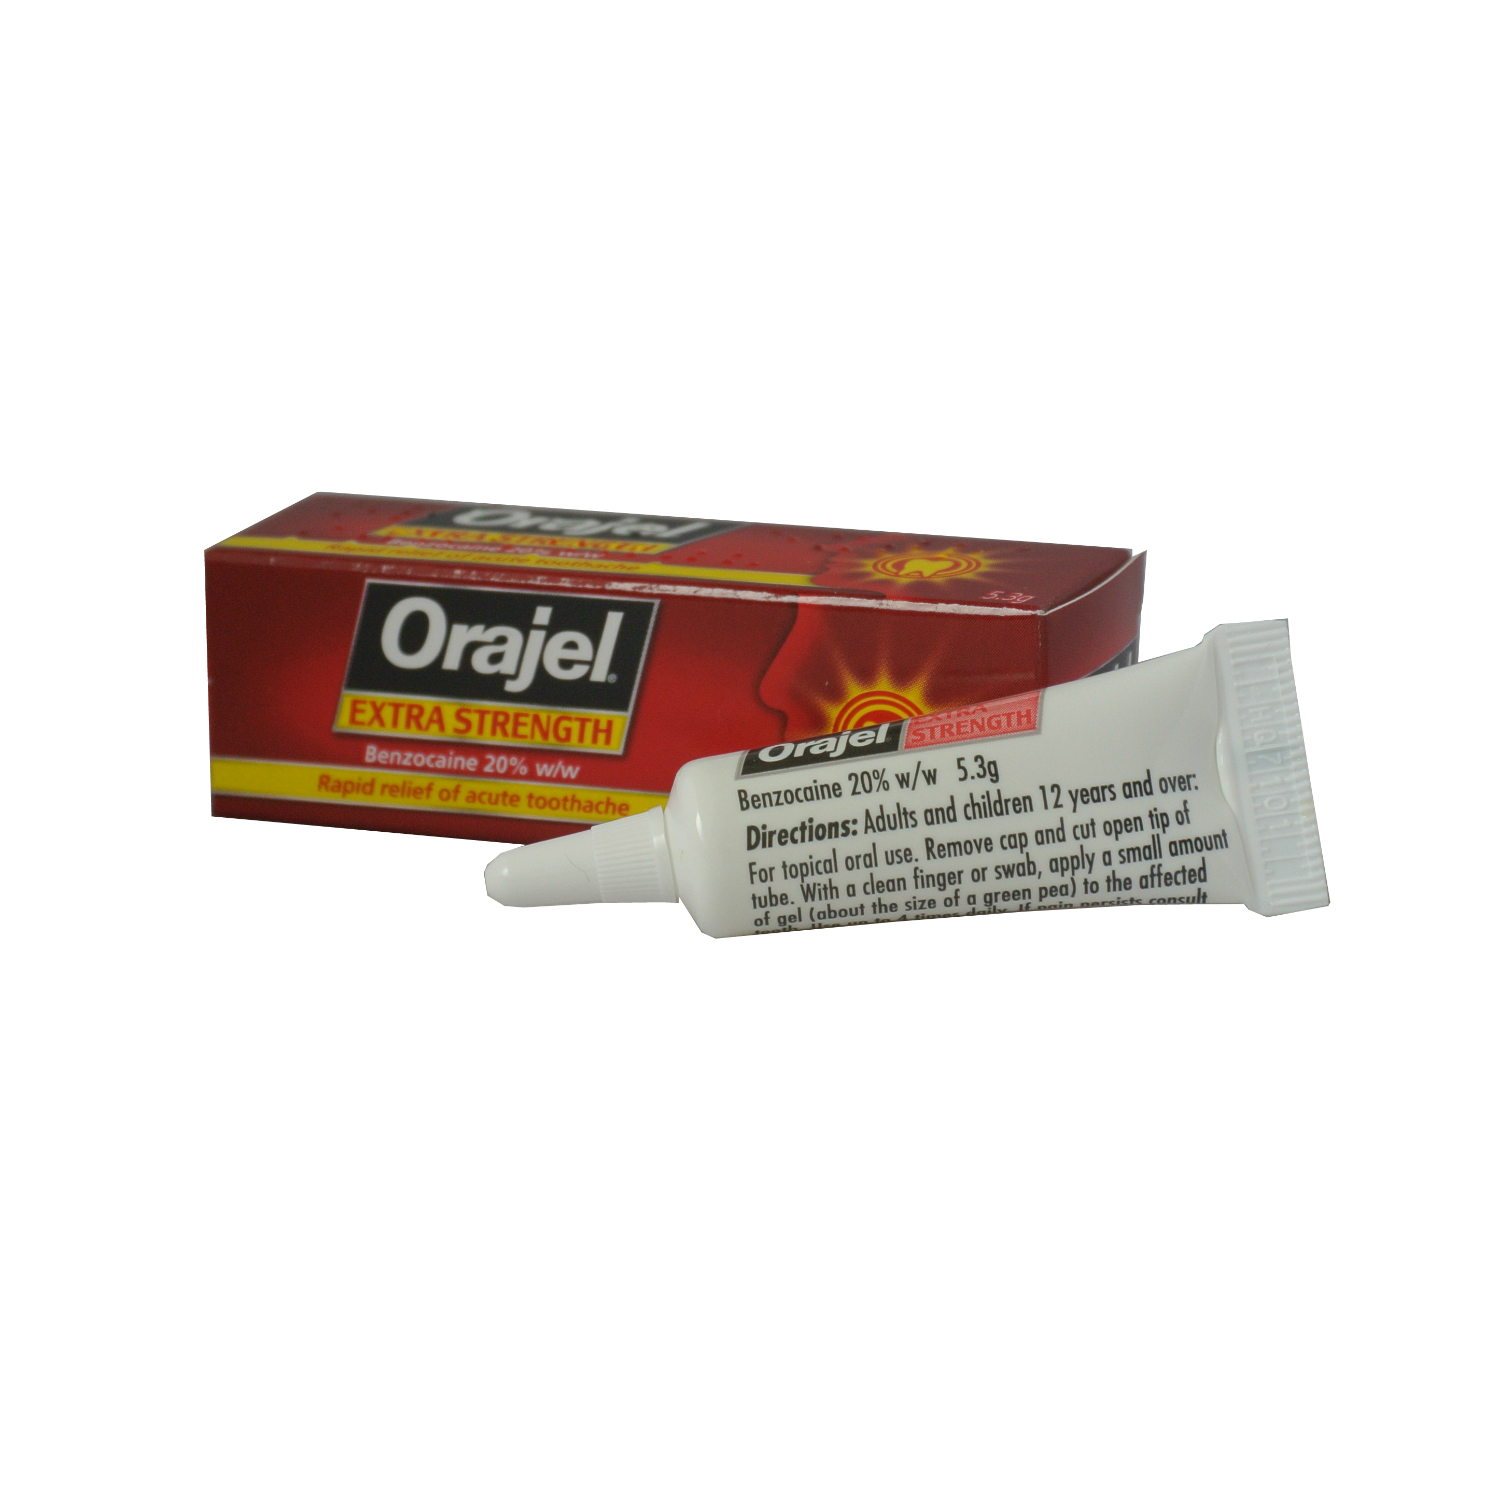 A tube of Orajel.